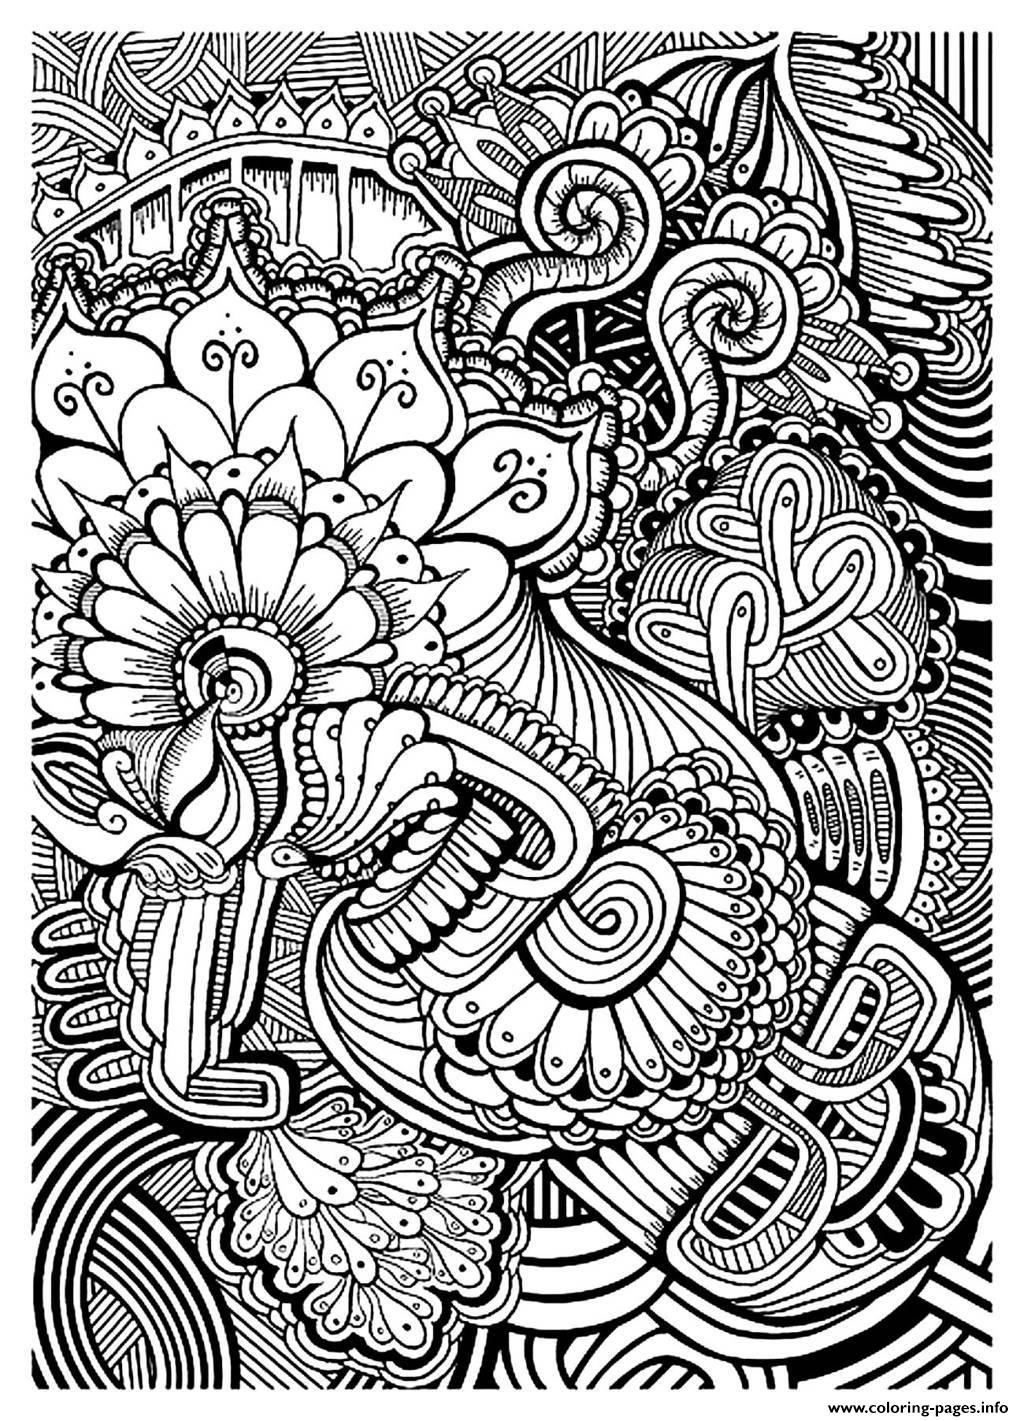 Adult Zen Anti Stress Relax To Print Coloring Pages Printable